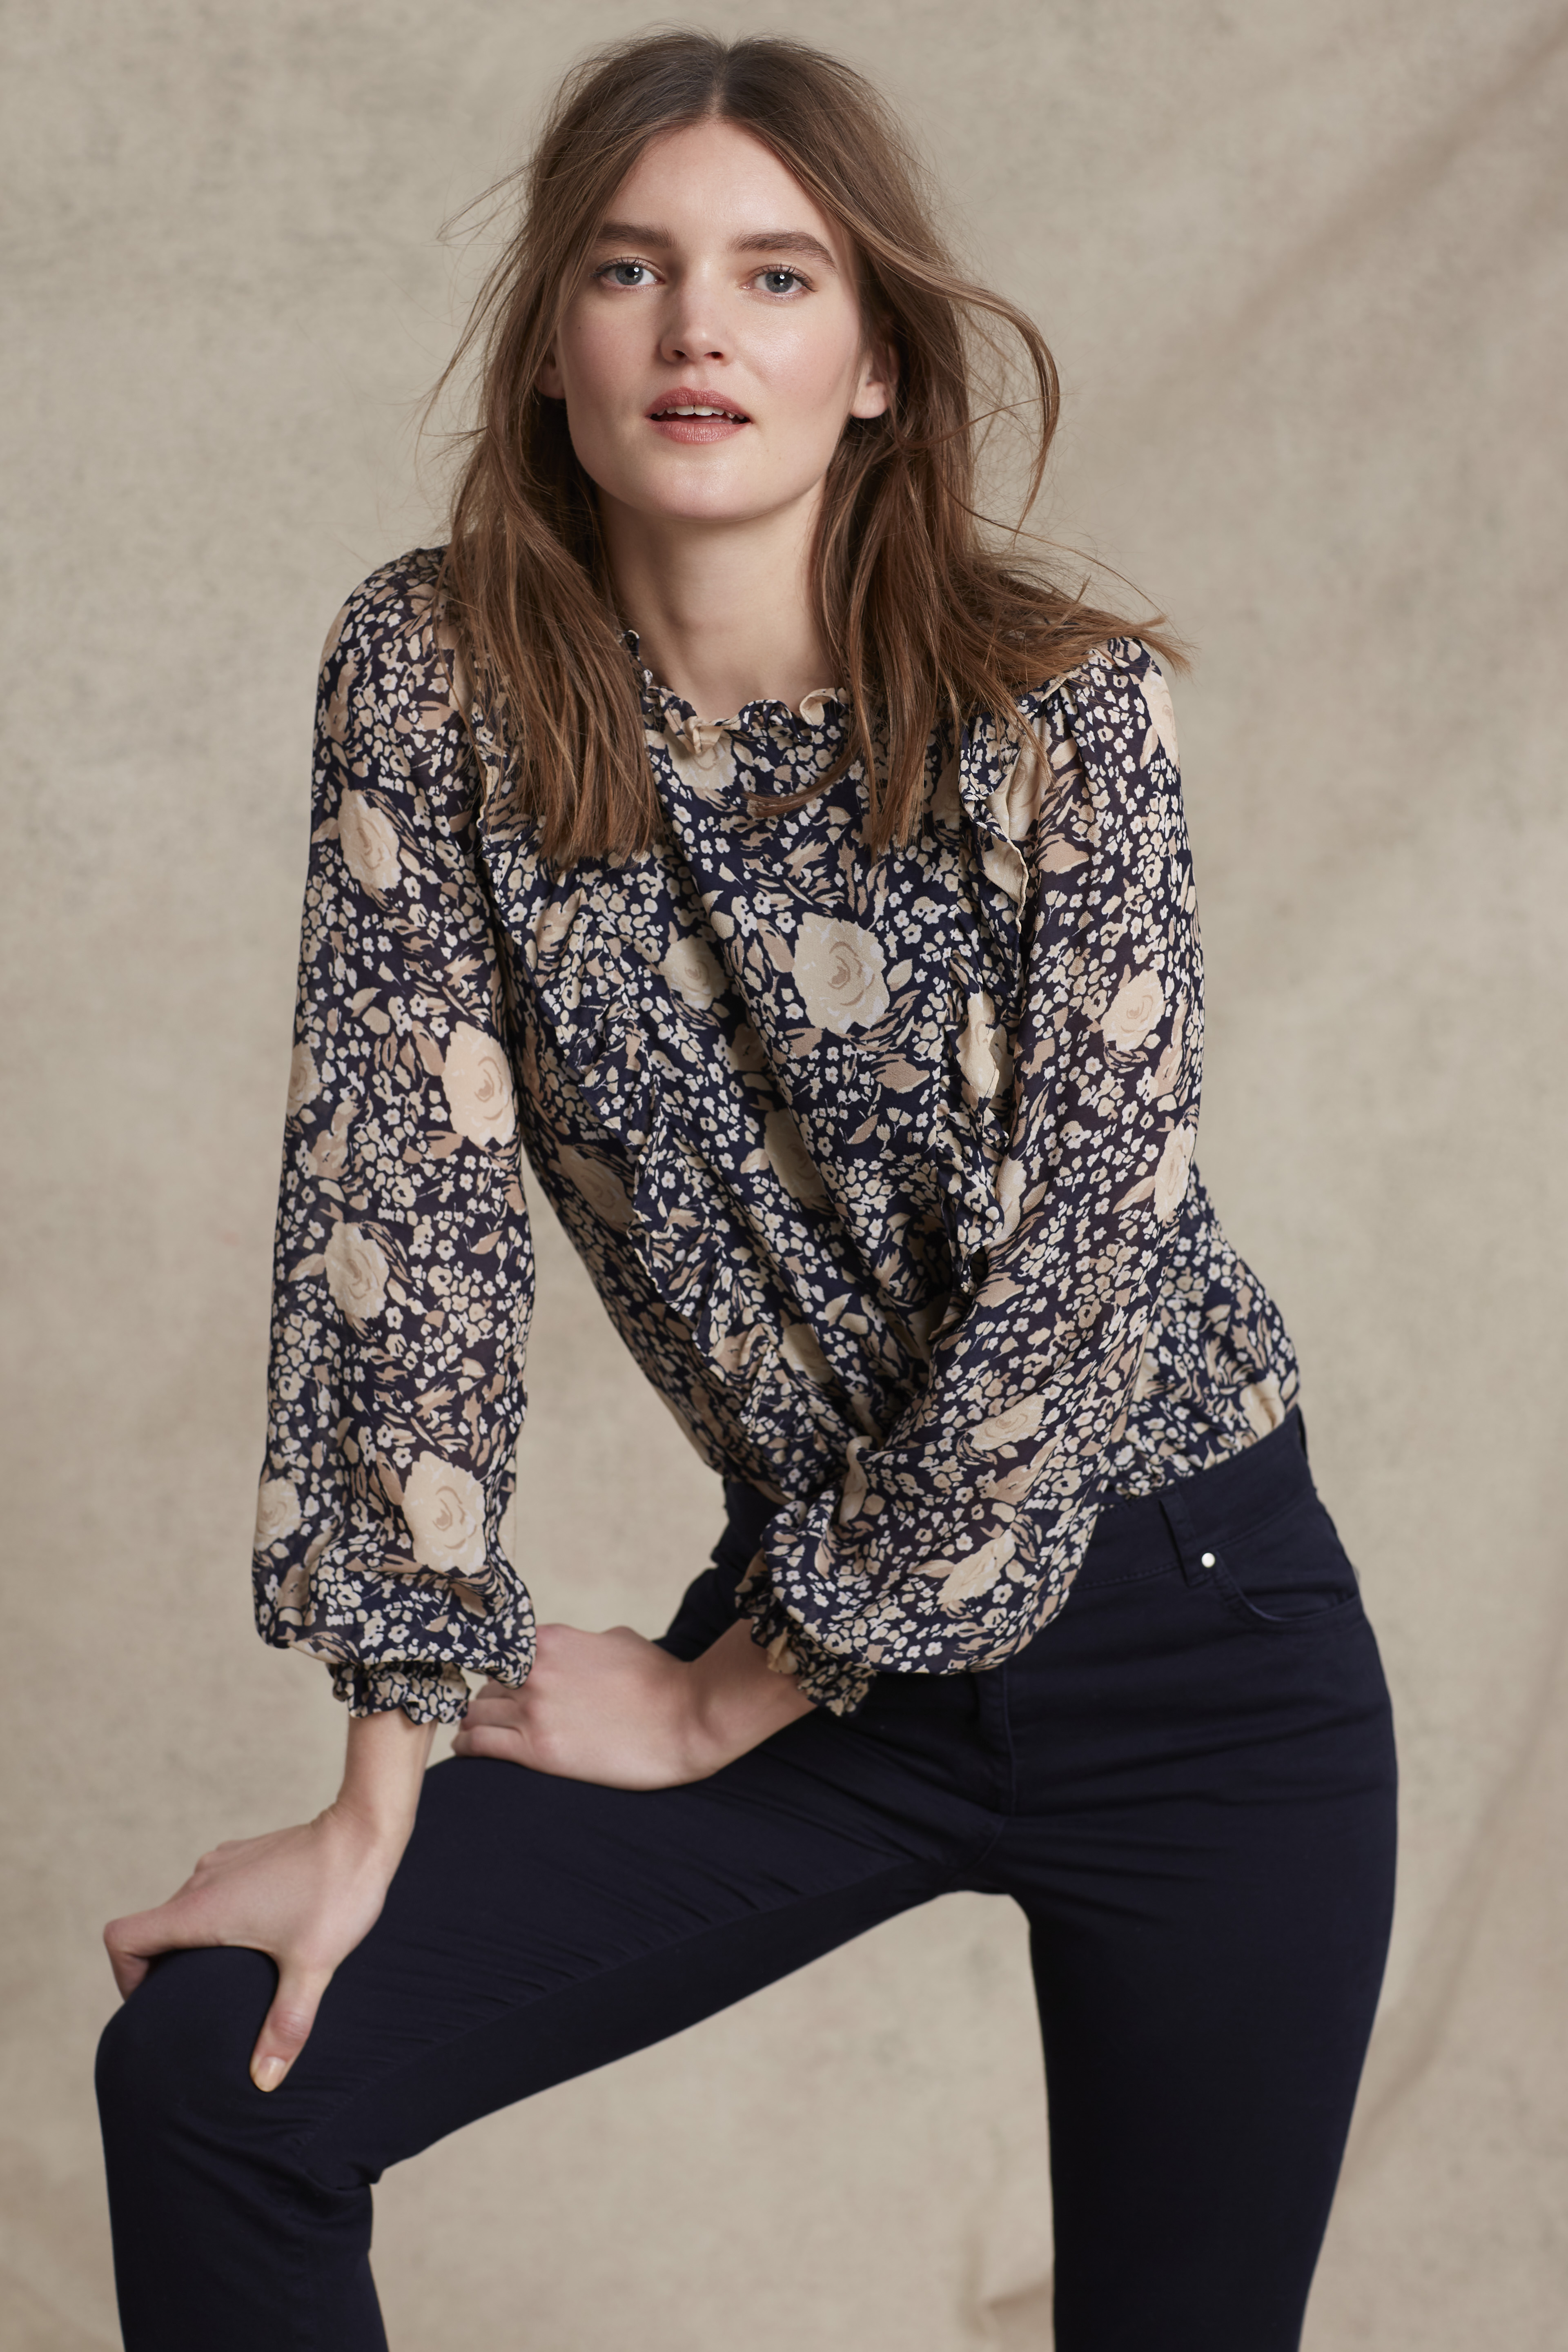 Refresh your wardrobe with our new Alderney collection